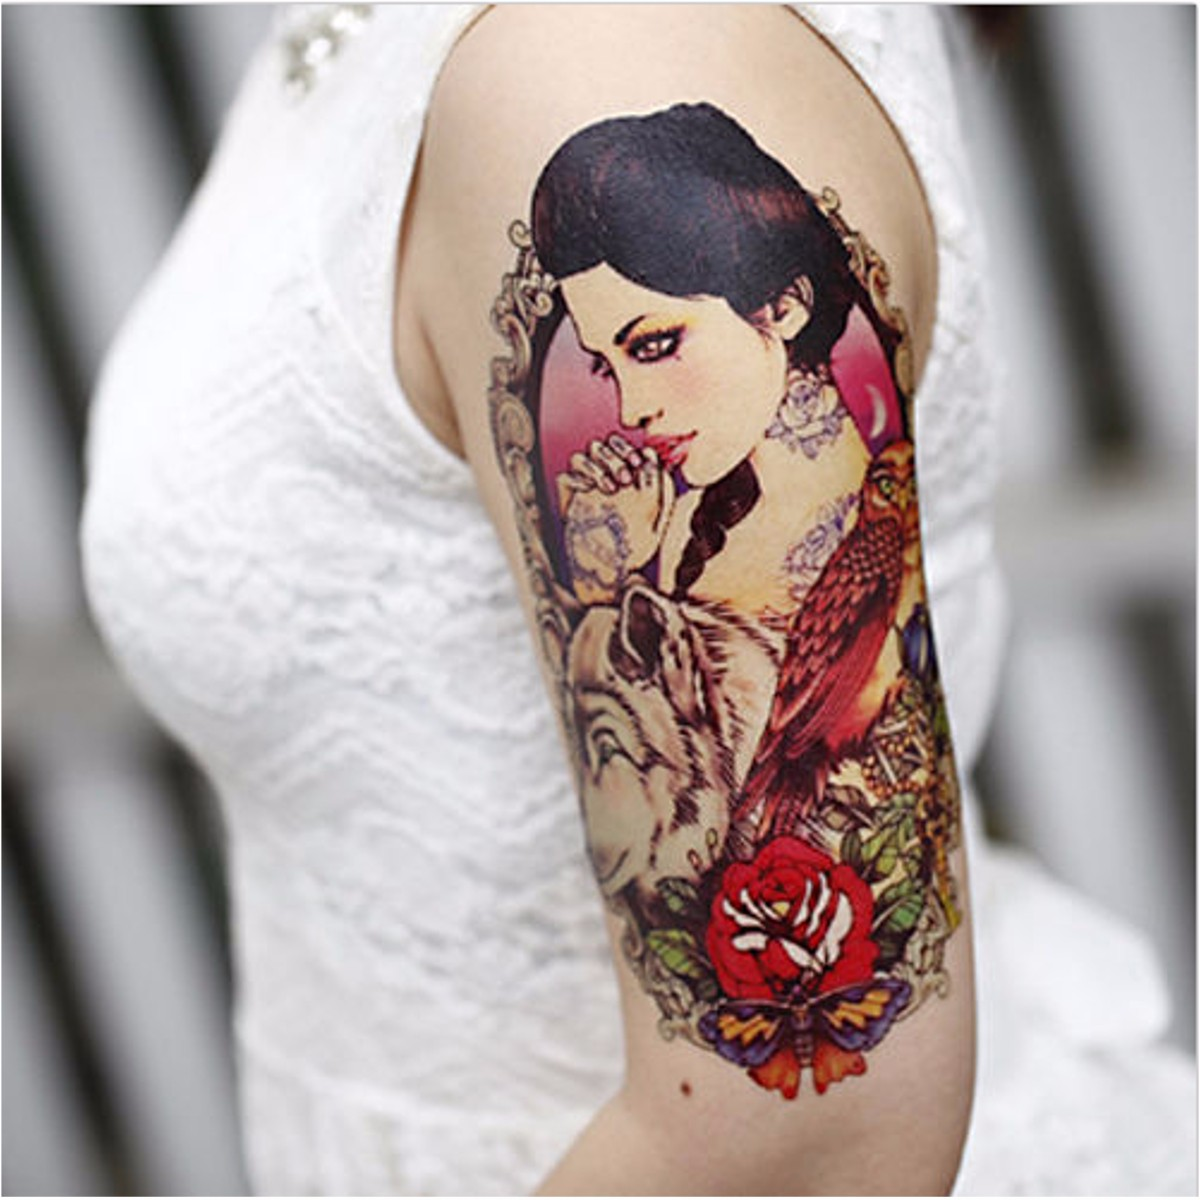 Online buy wholesale 3m waterproof spray from china 3m for Wholesale temporary tattoos